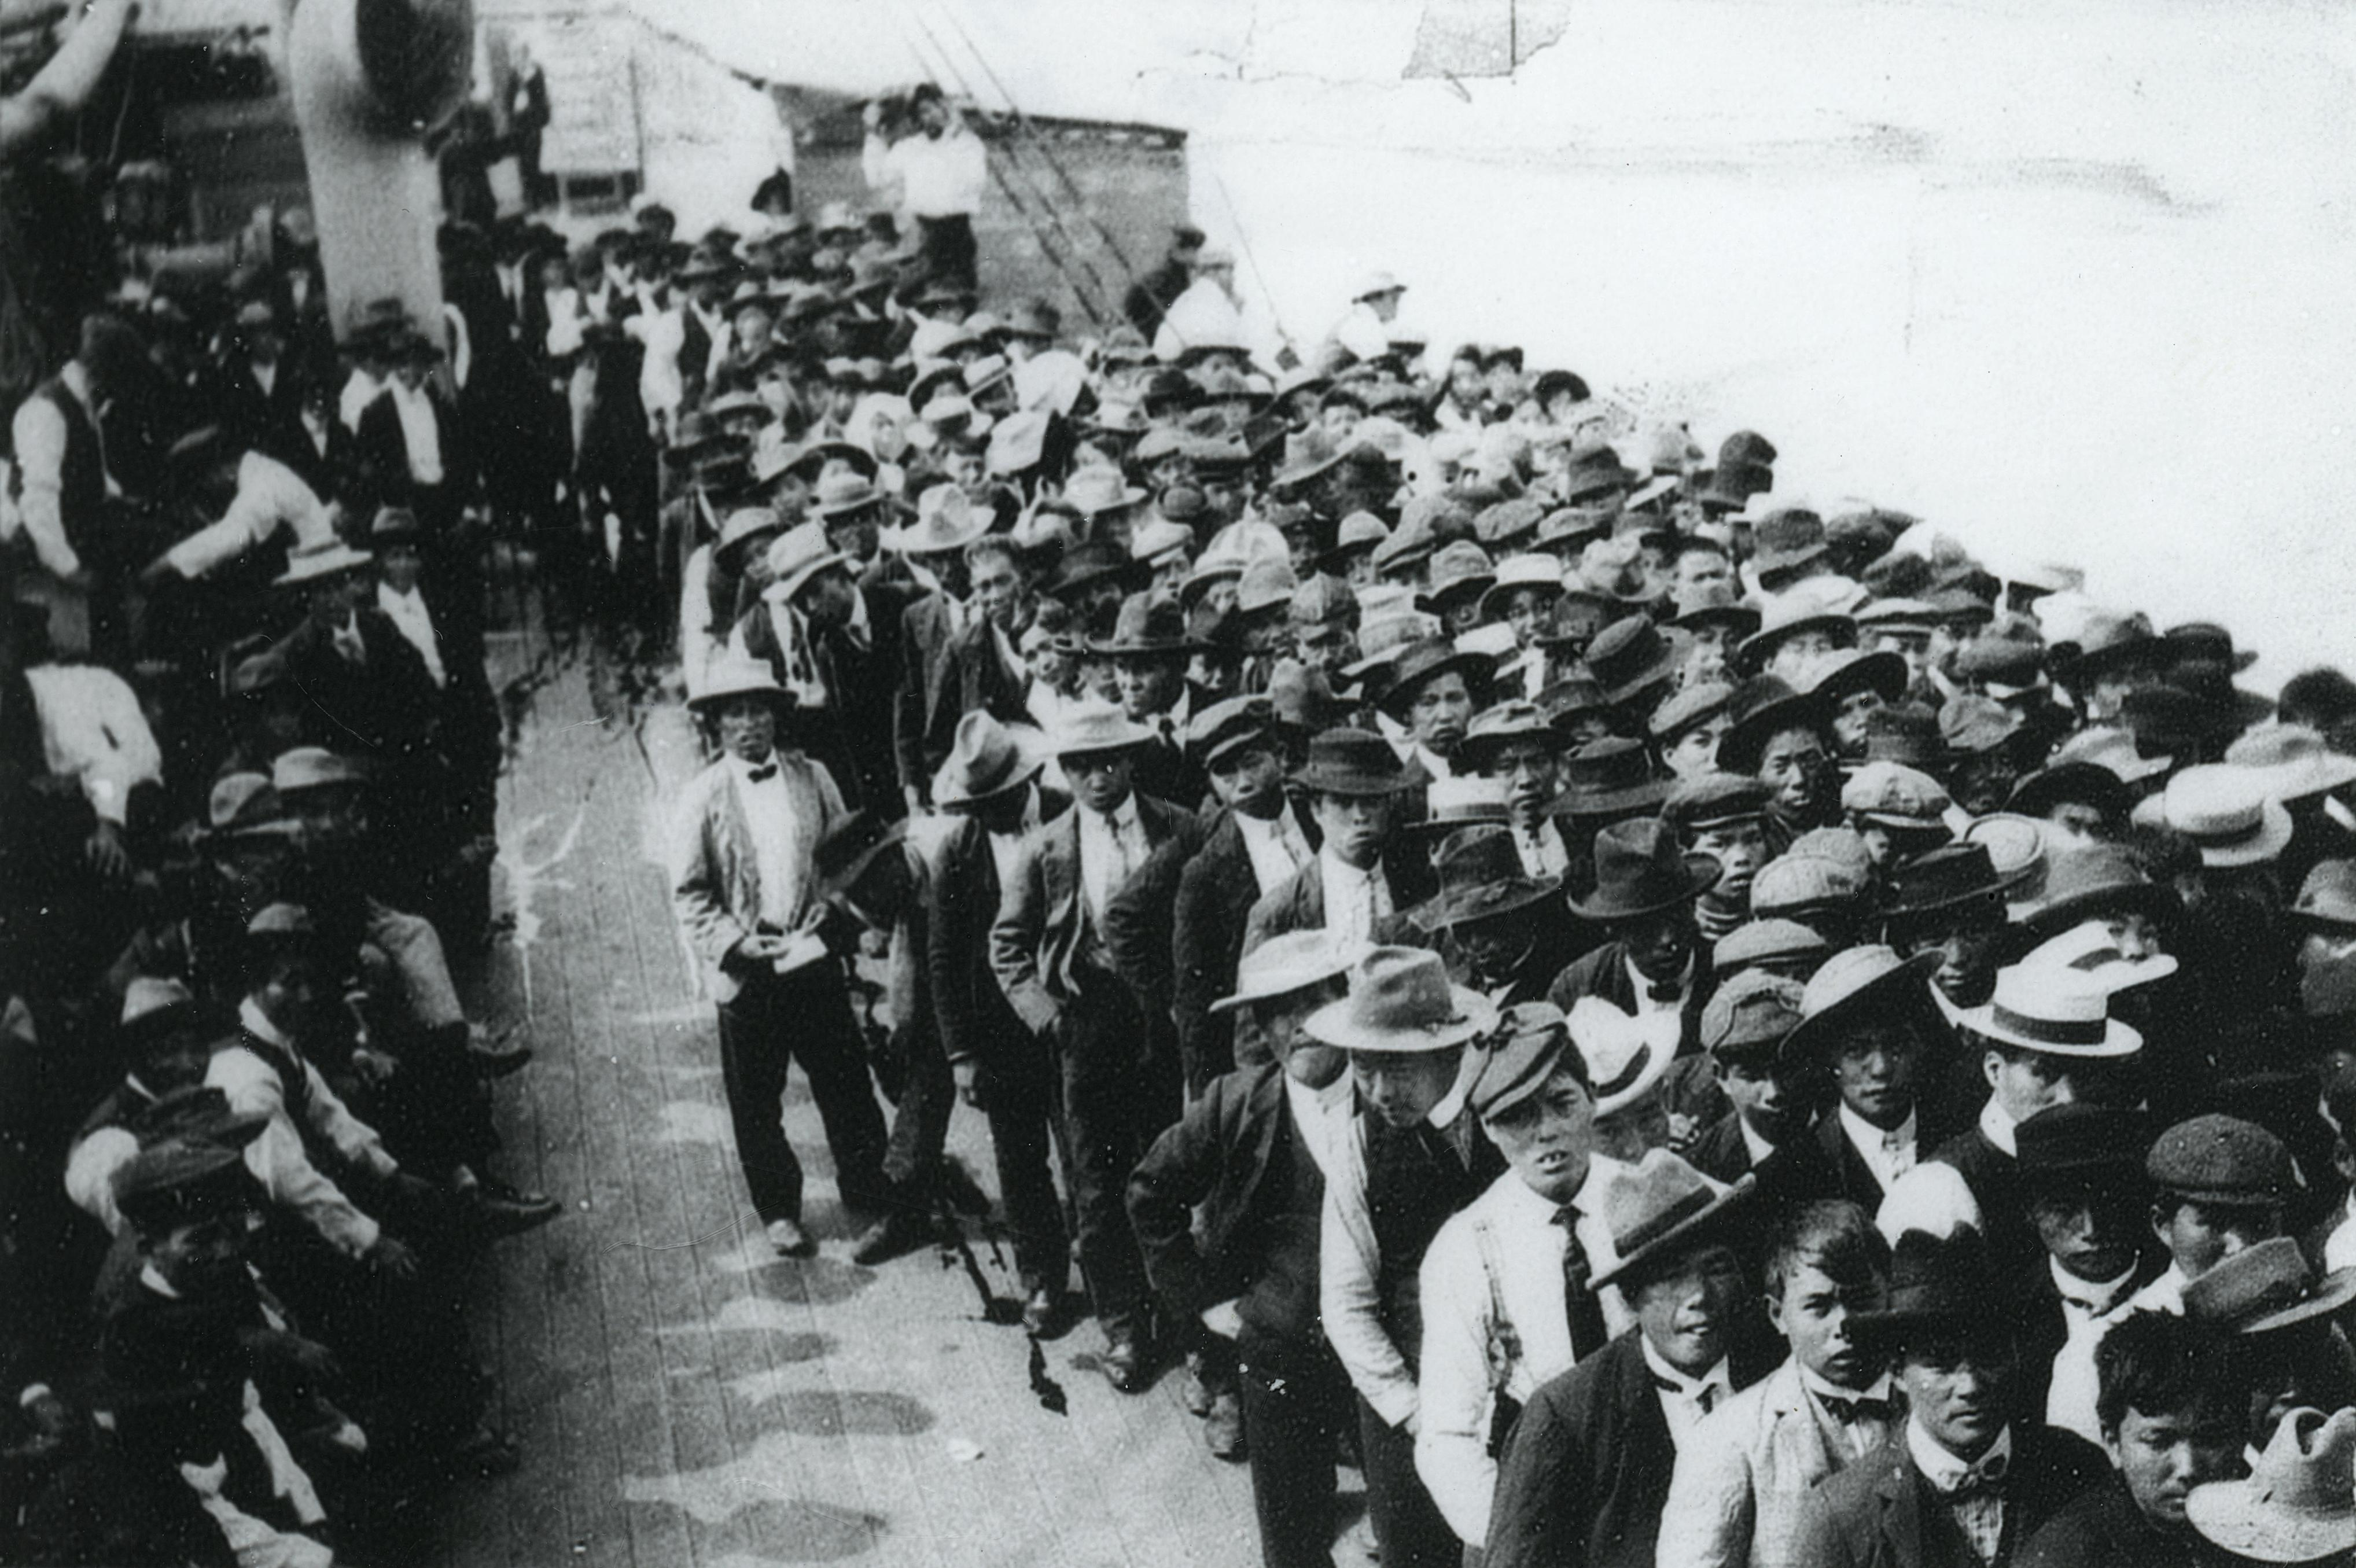 A photo depicting a large group of Japanese immigrants on the deck of the S.S. Kumeric at the port of Vancouver in 1907.